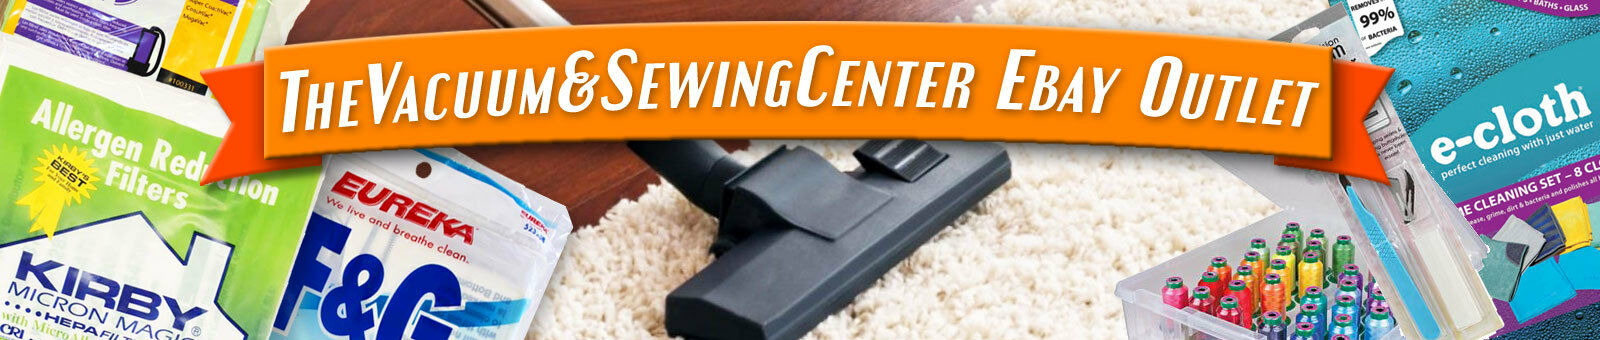 The Vacuum & Sewing Center Outlet